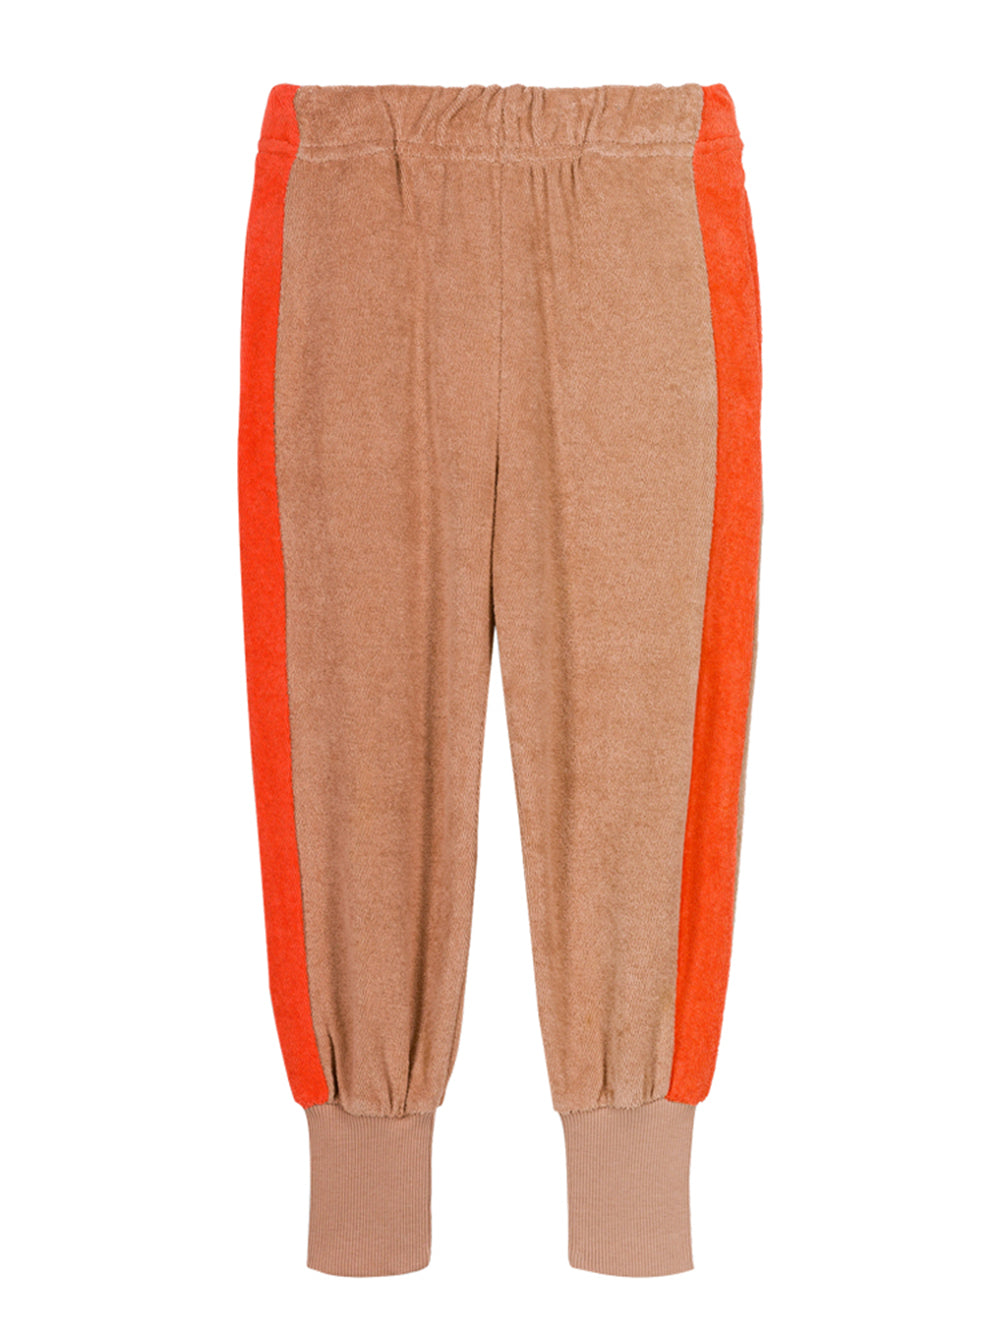 Sunkiss Charles Joggers